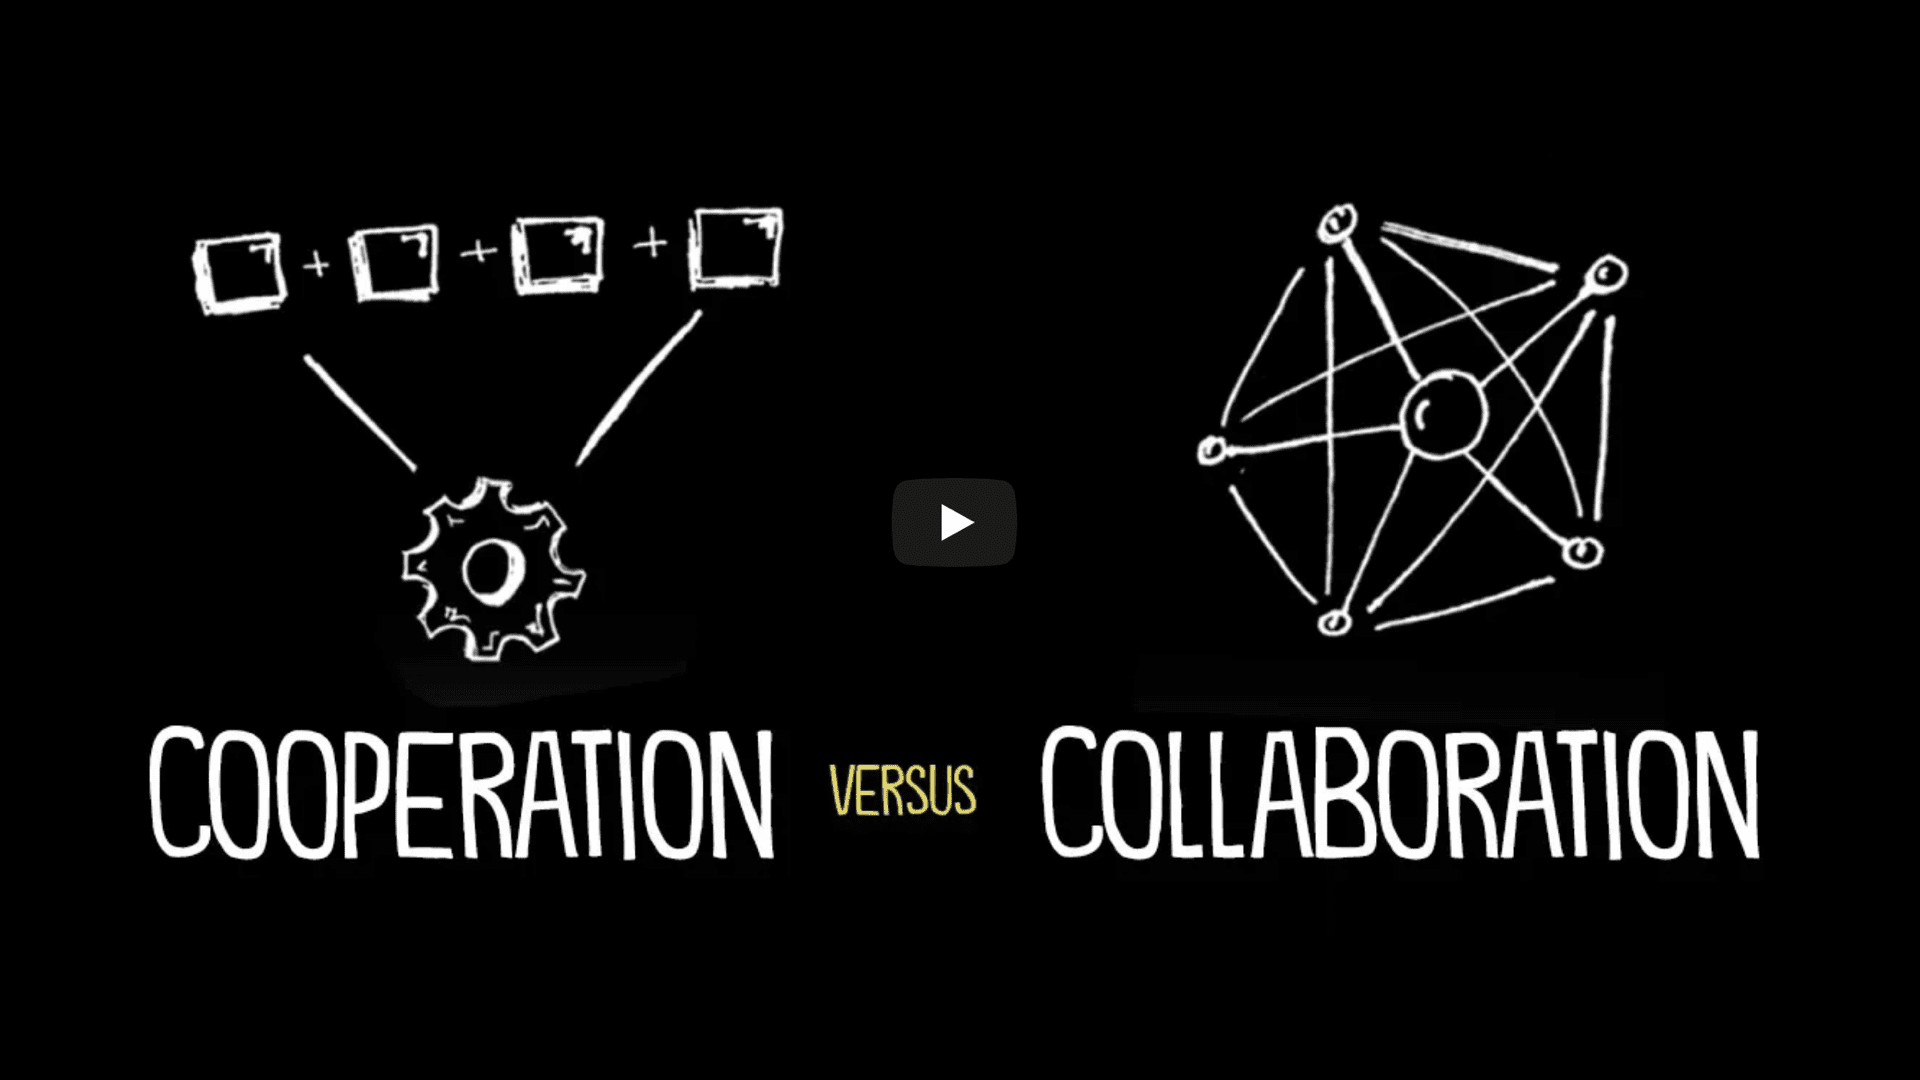 The Difference Between Cooperation and Collaboration